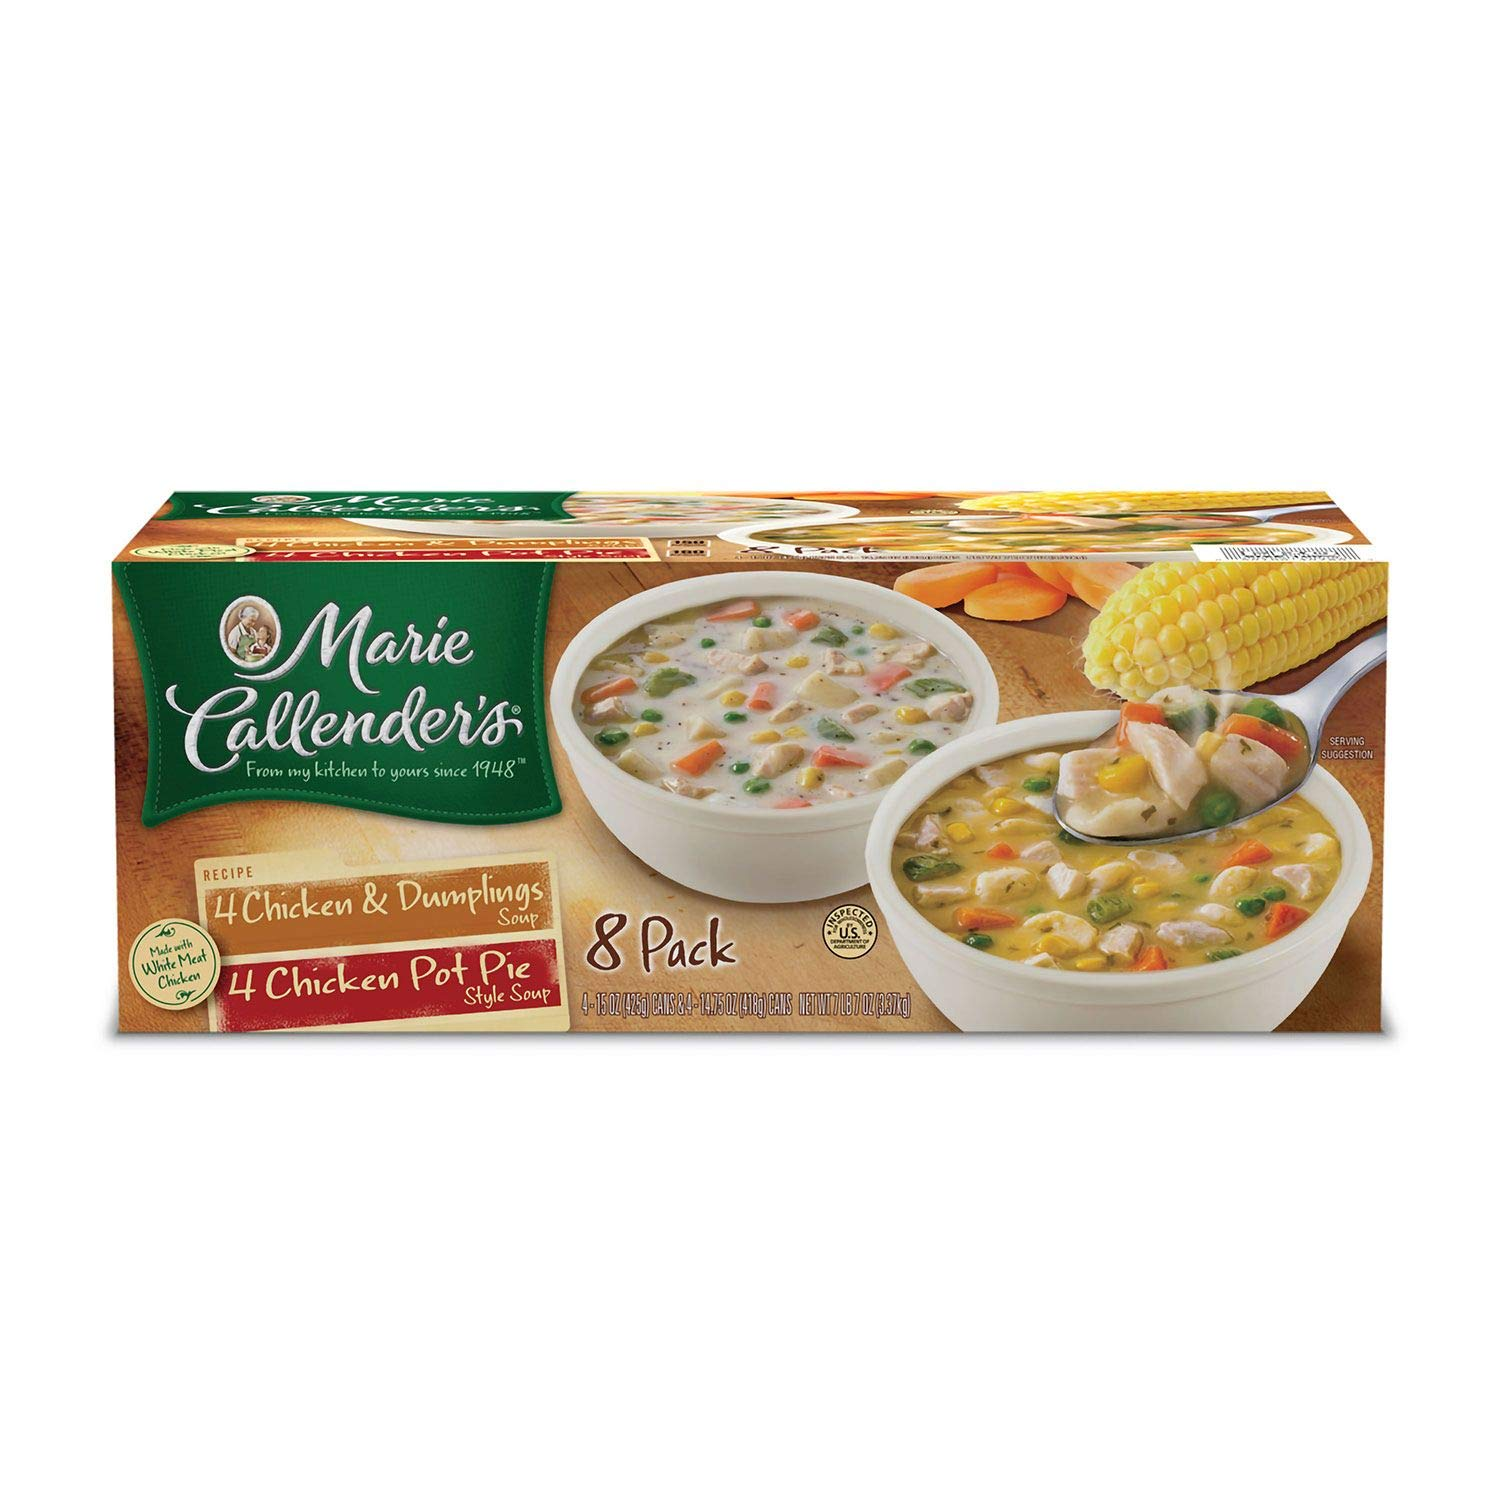 Marie Callender?Chicken Variety Soup, 8 Pack by Marie Callender's